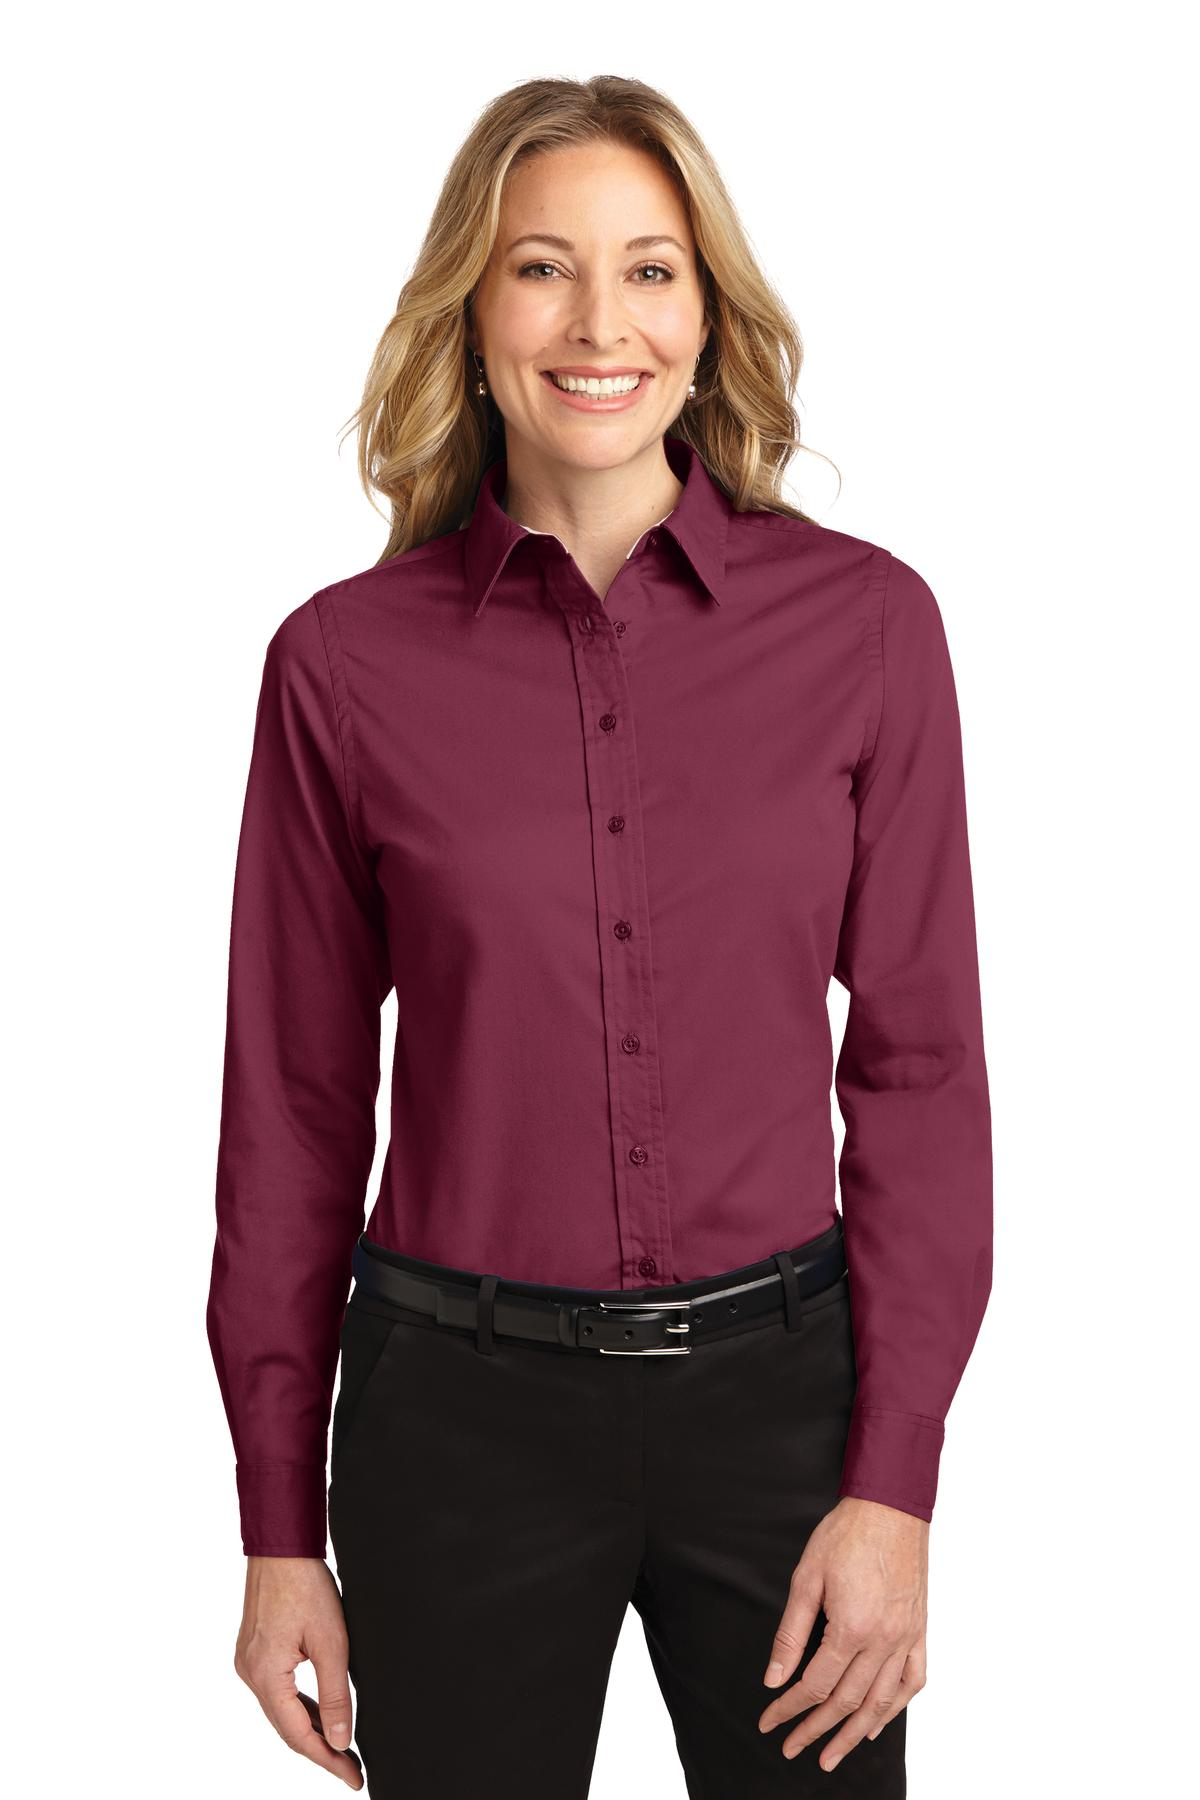 Port Authority ®  Ladies Long Sleeve Easy Care Shirt.  L608 - Burgundy/ Light Stone